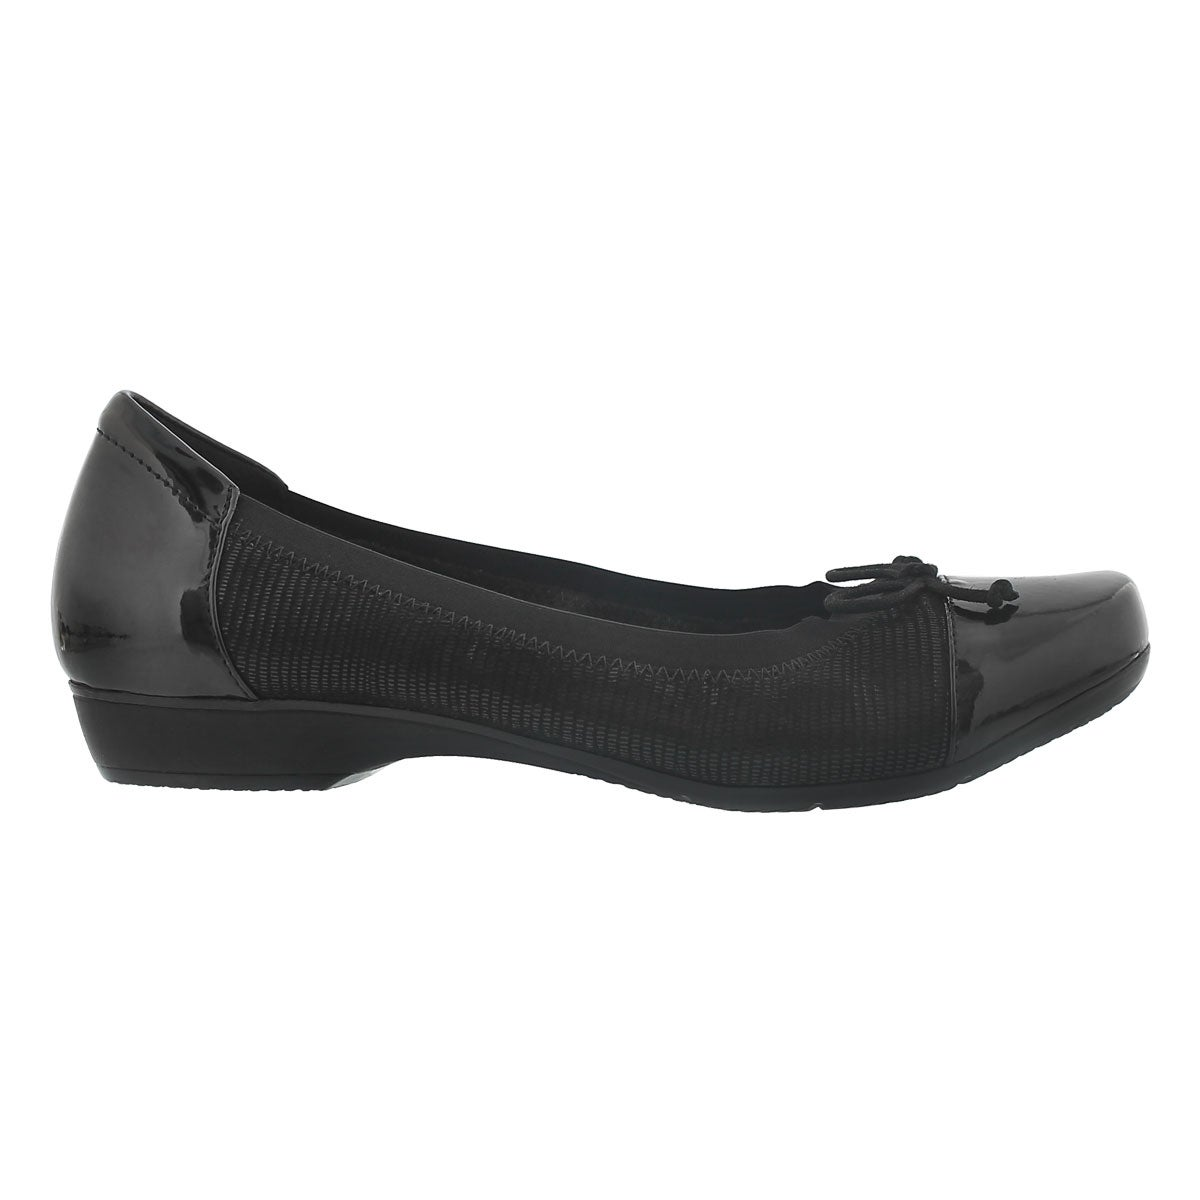 Lds Blanche Nora blk suede flat - WIDE